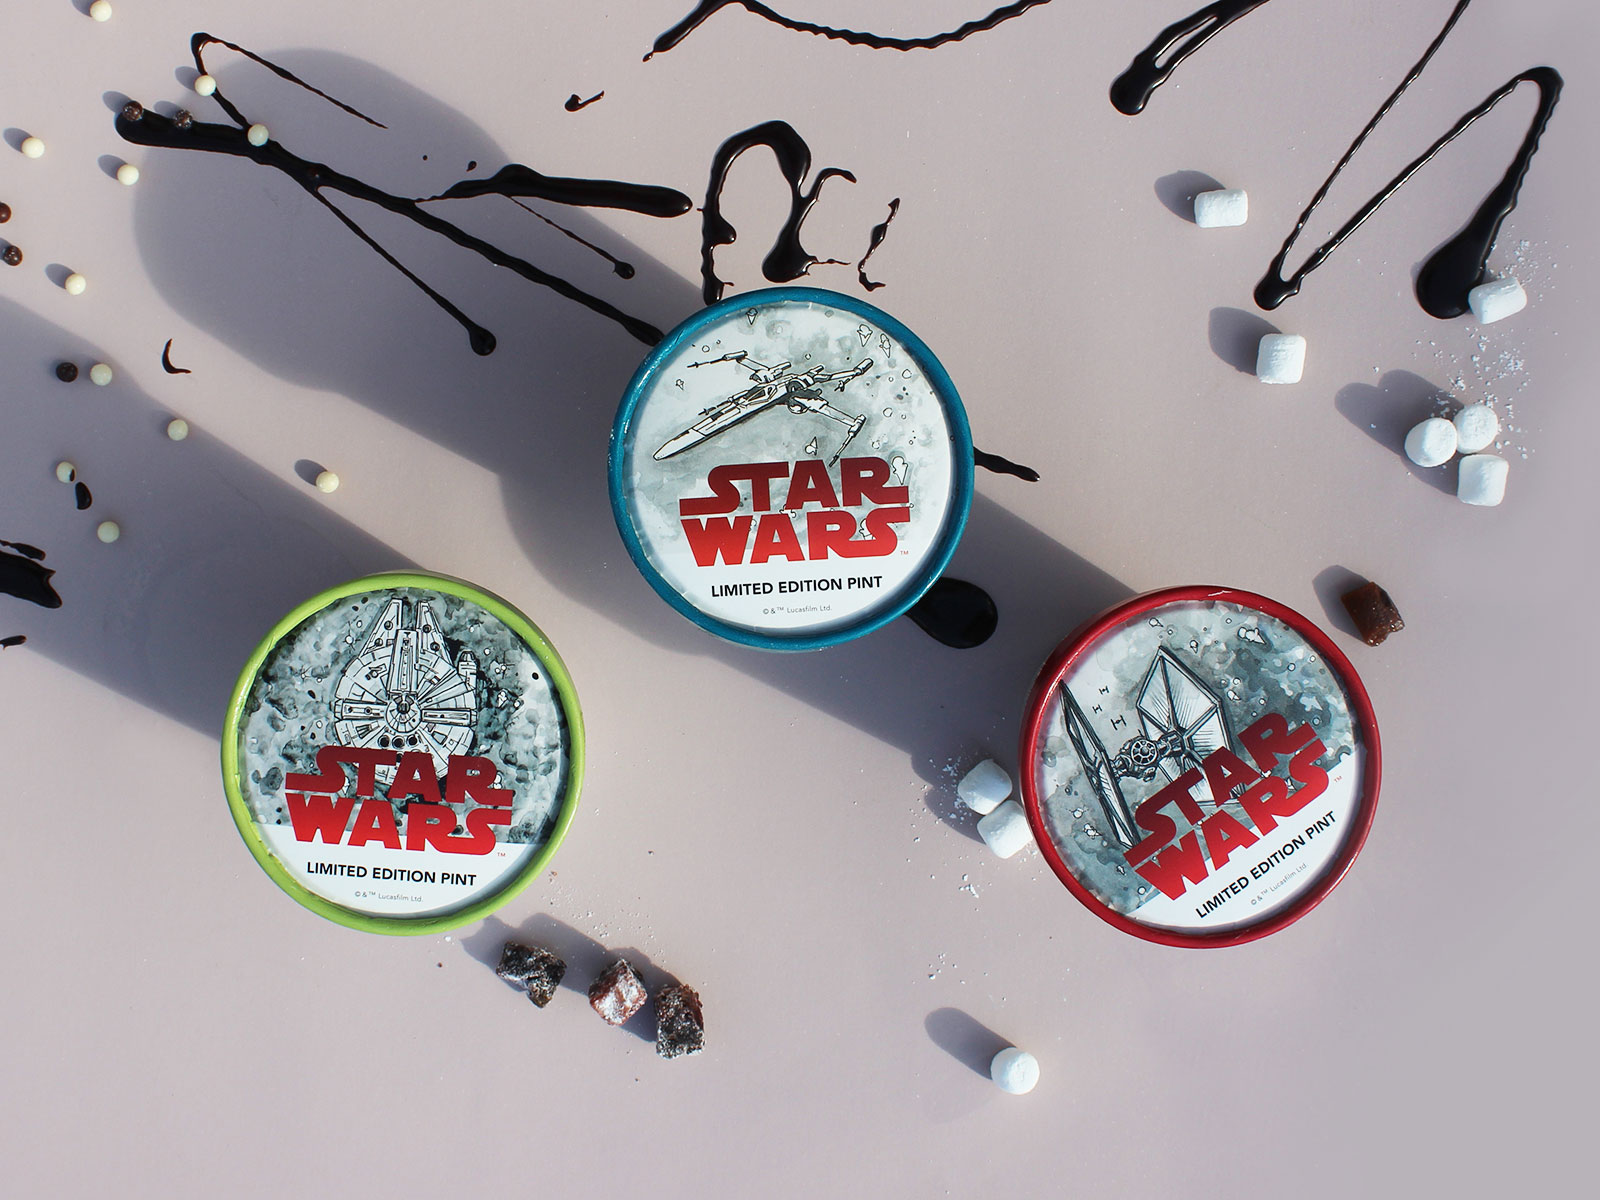 'Star Wars: The Last Jedi' Inspires 3 Ice Cream Flavors From Ample Hills